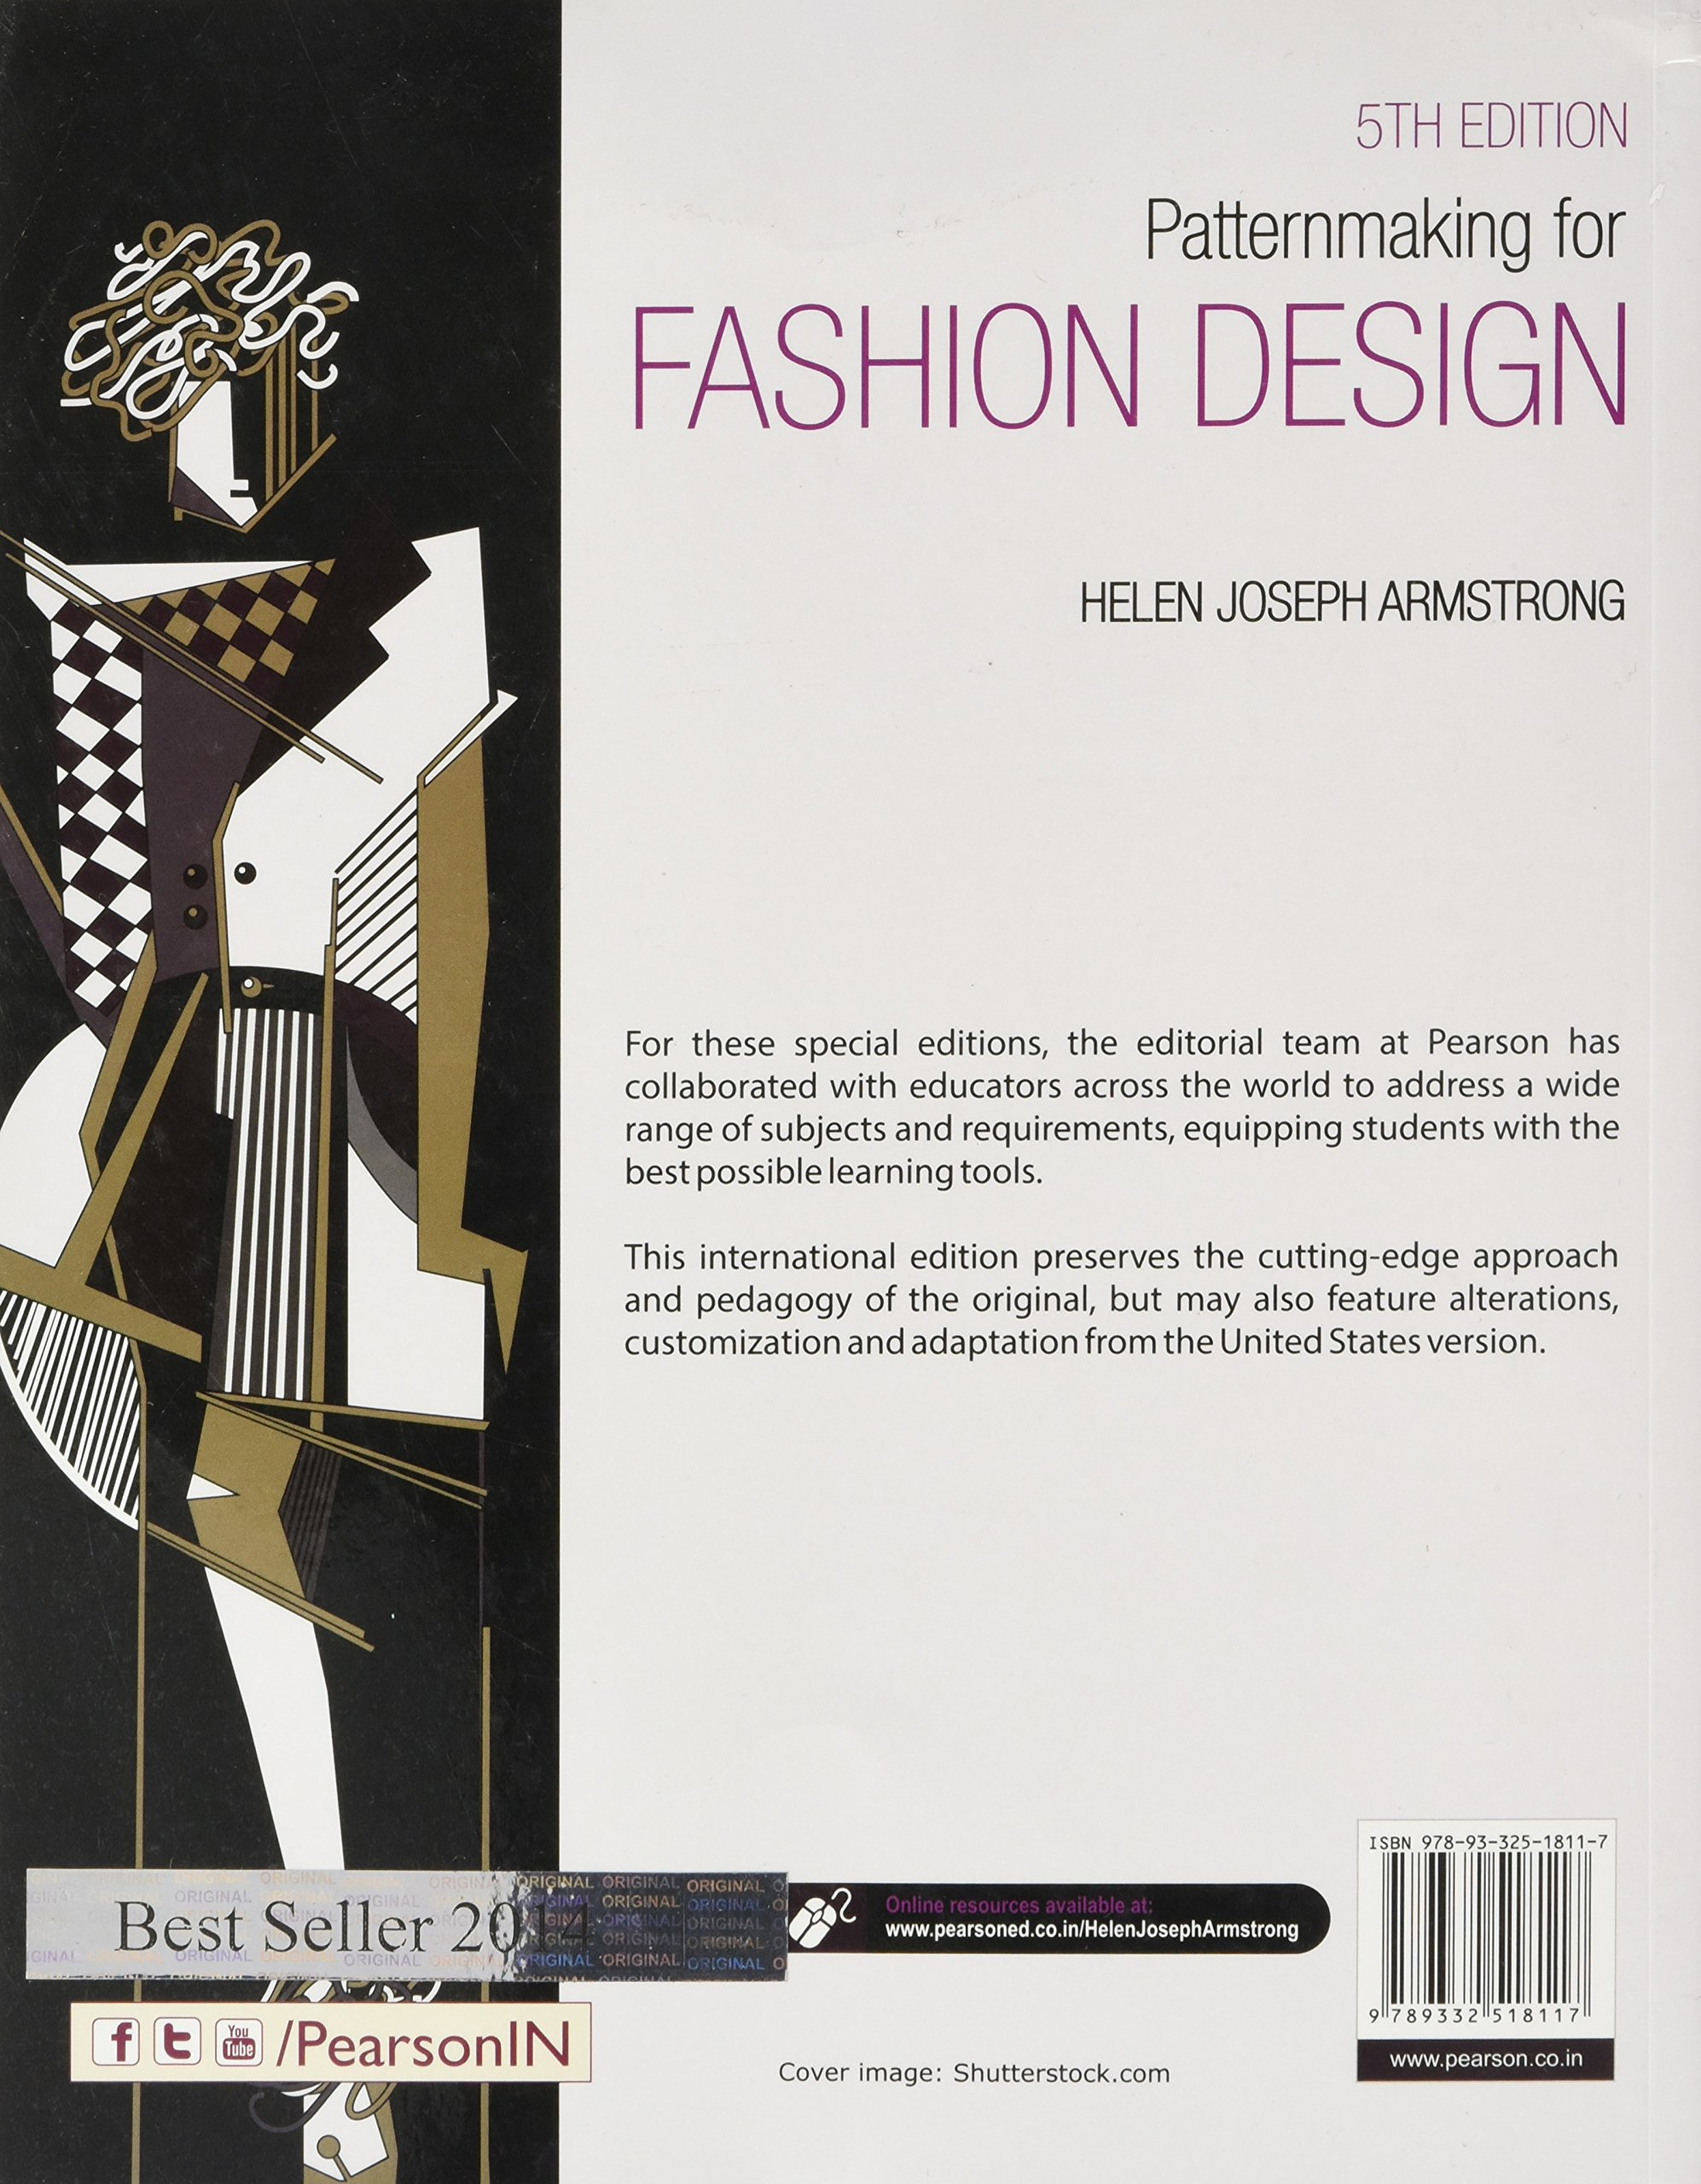 Fashion Design Books For Fashion Students The Best Design Books Buy Patternmaking For Fashion Design, 5e Book Online At Low Prices In India  | Patternmaking For Fashion Design, 5e Reviews U0026 Ratings - Amazon.in